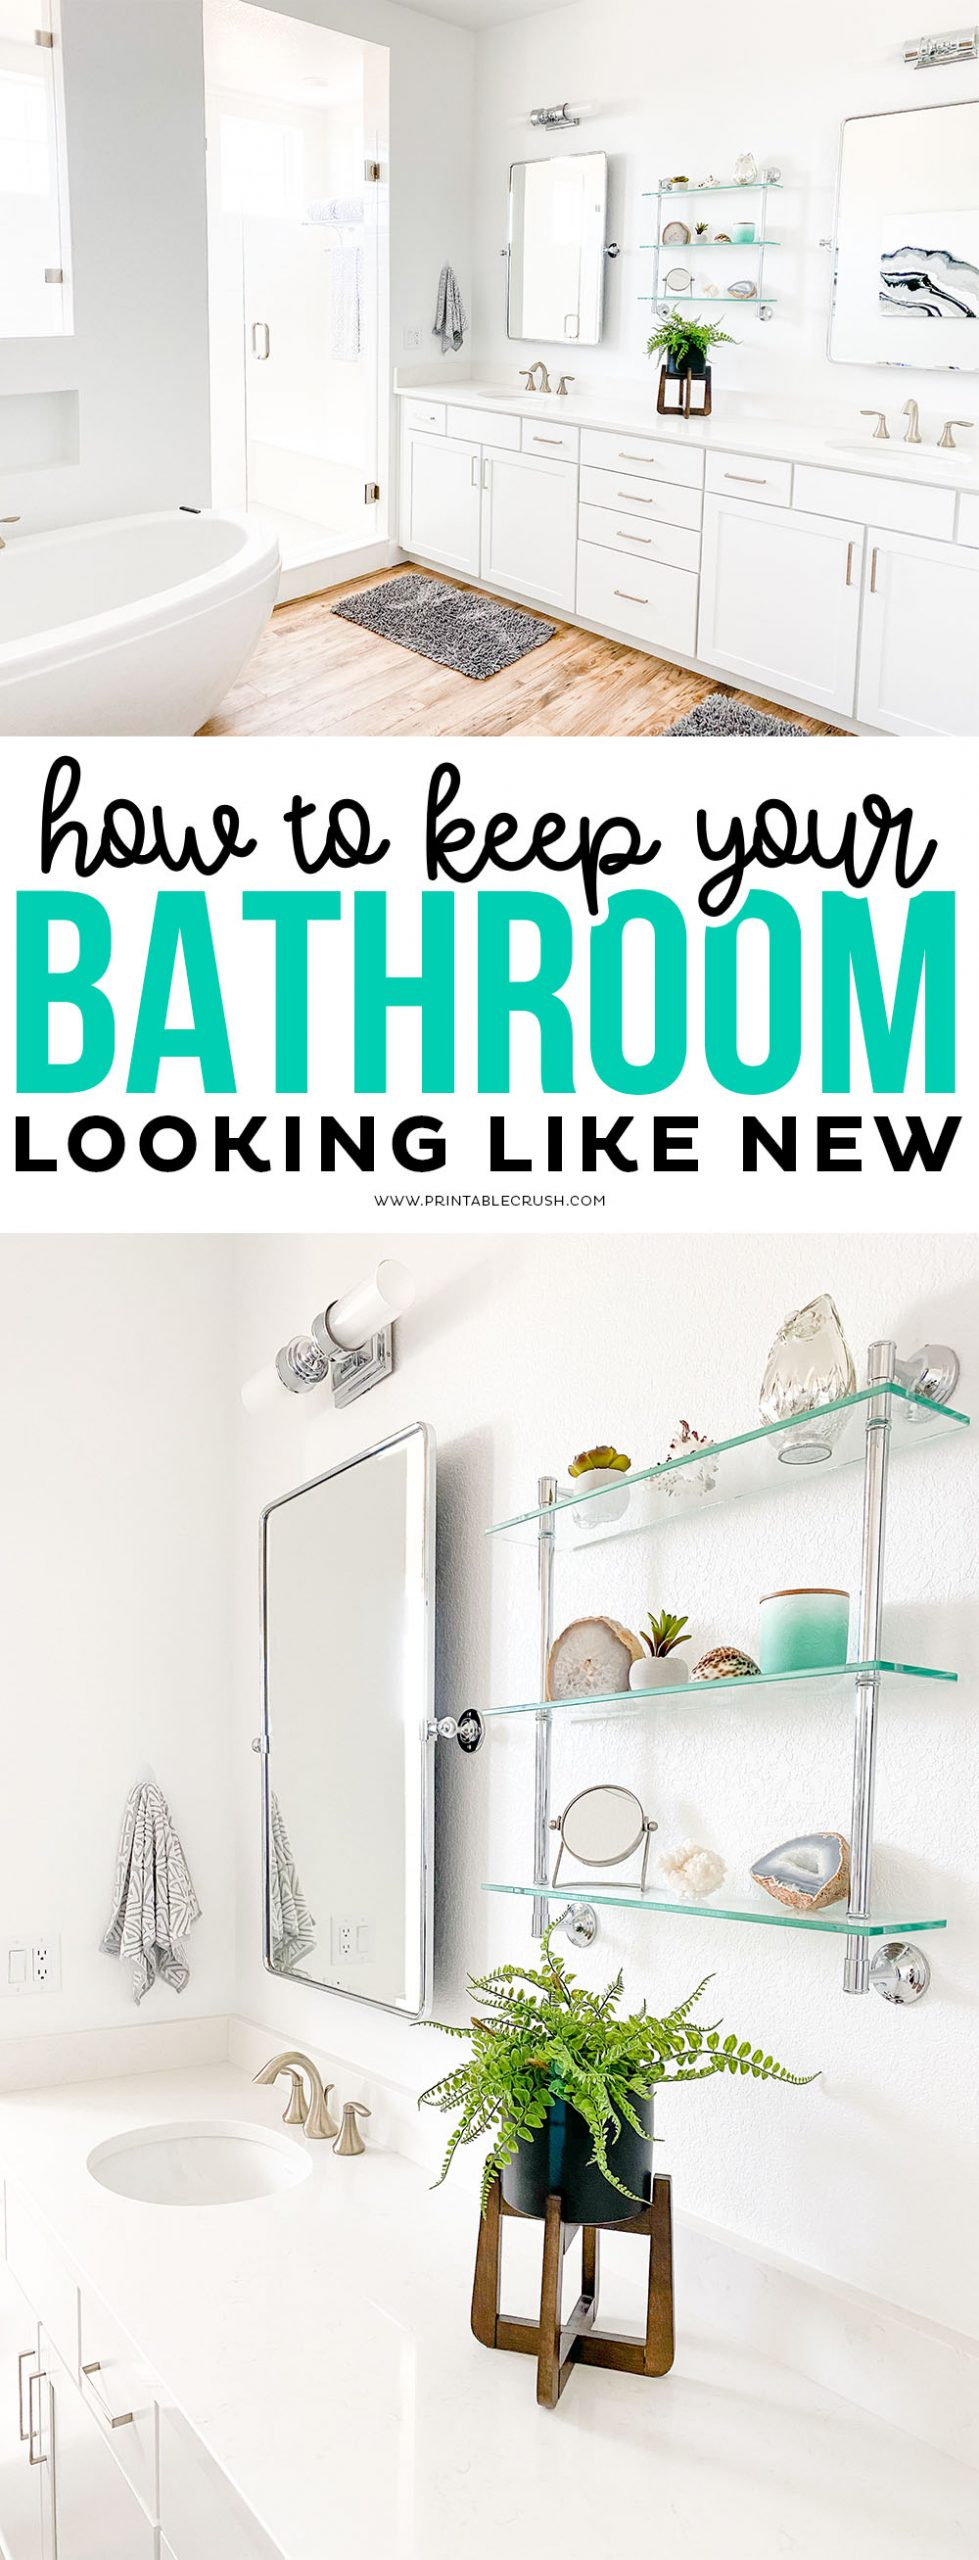 Clean your bathroom so it looks like new - Printable Crush